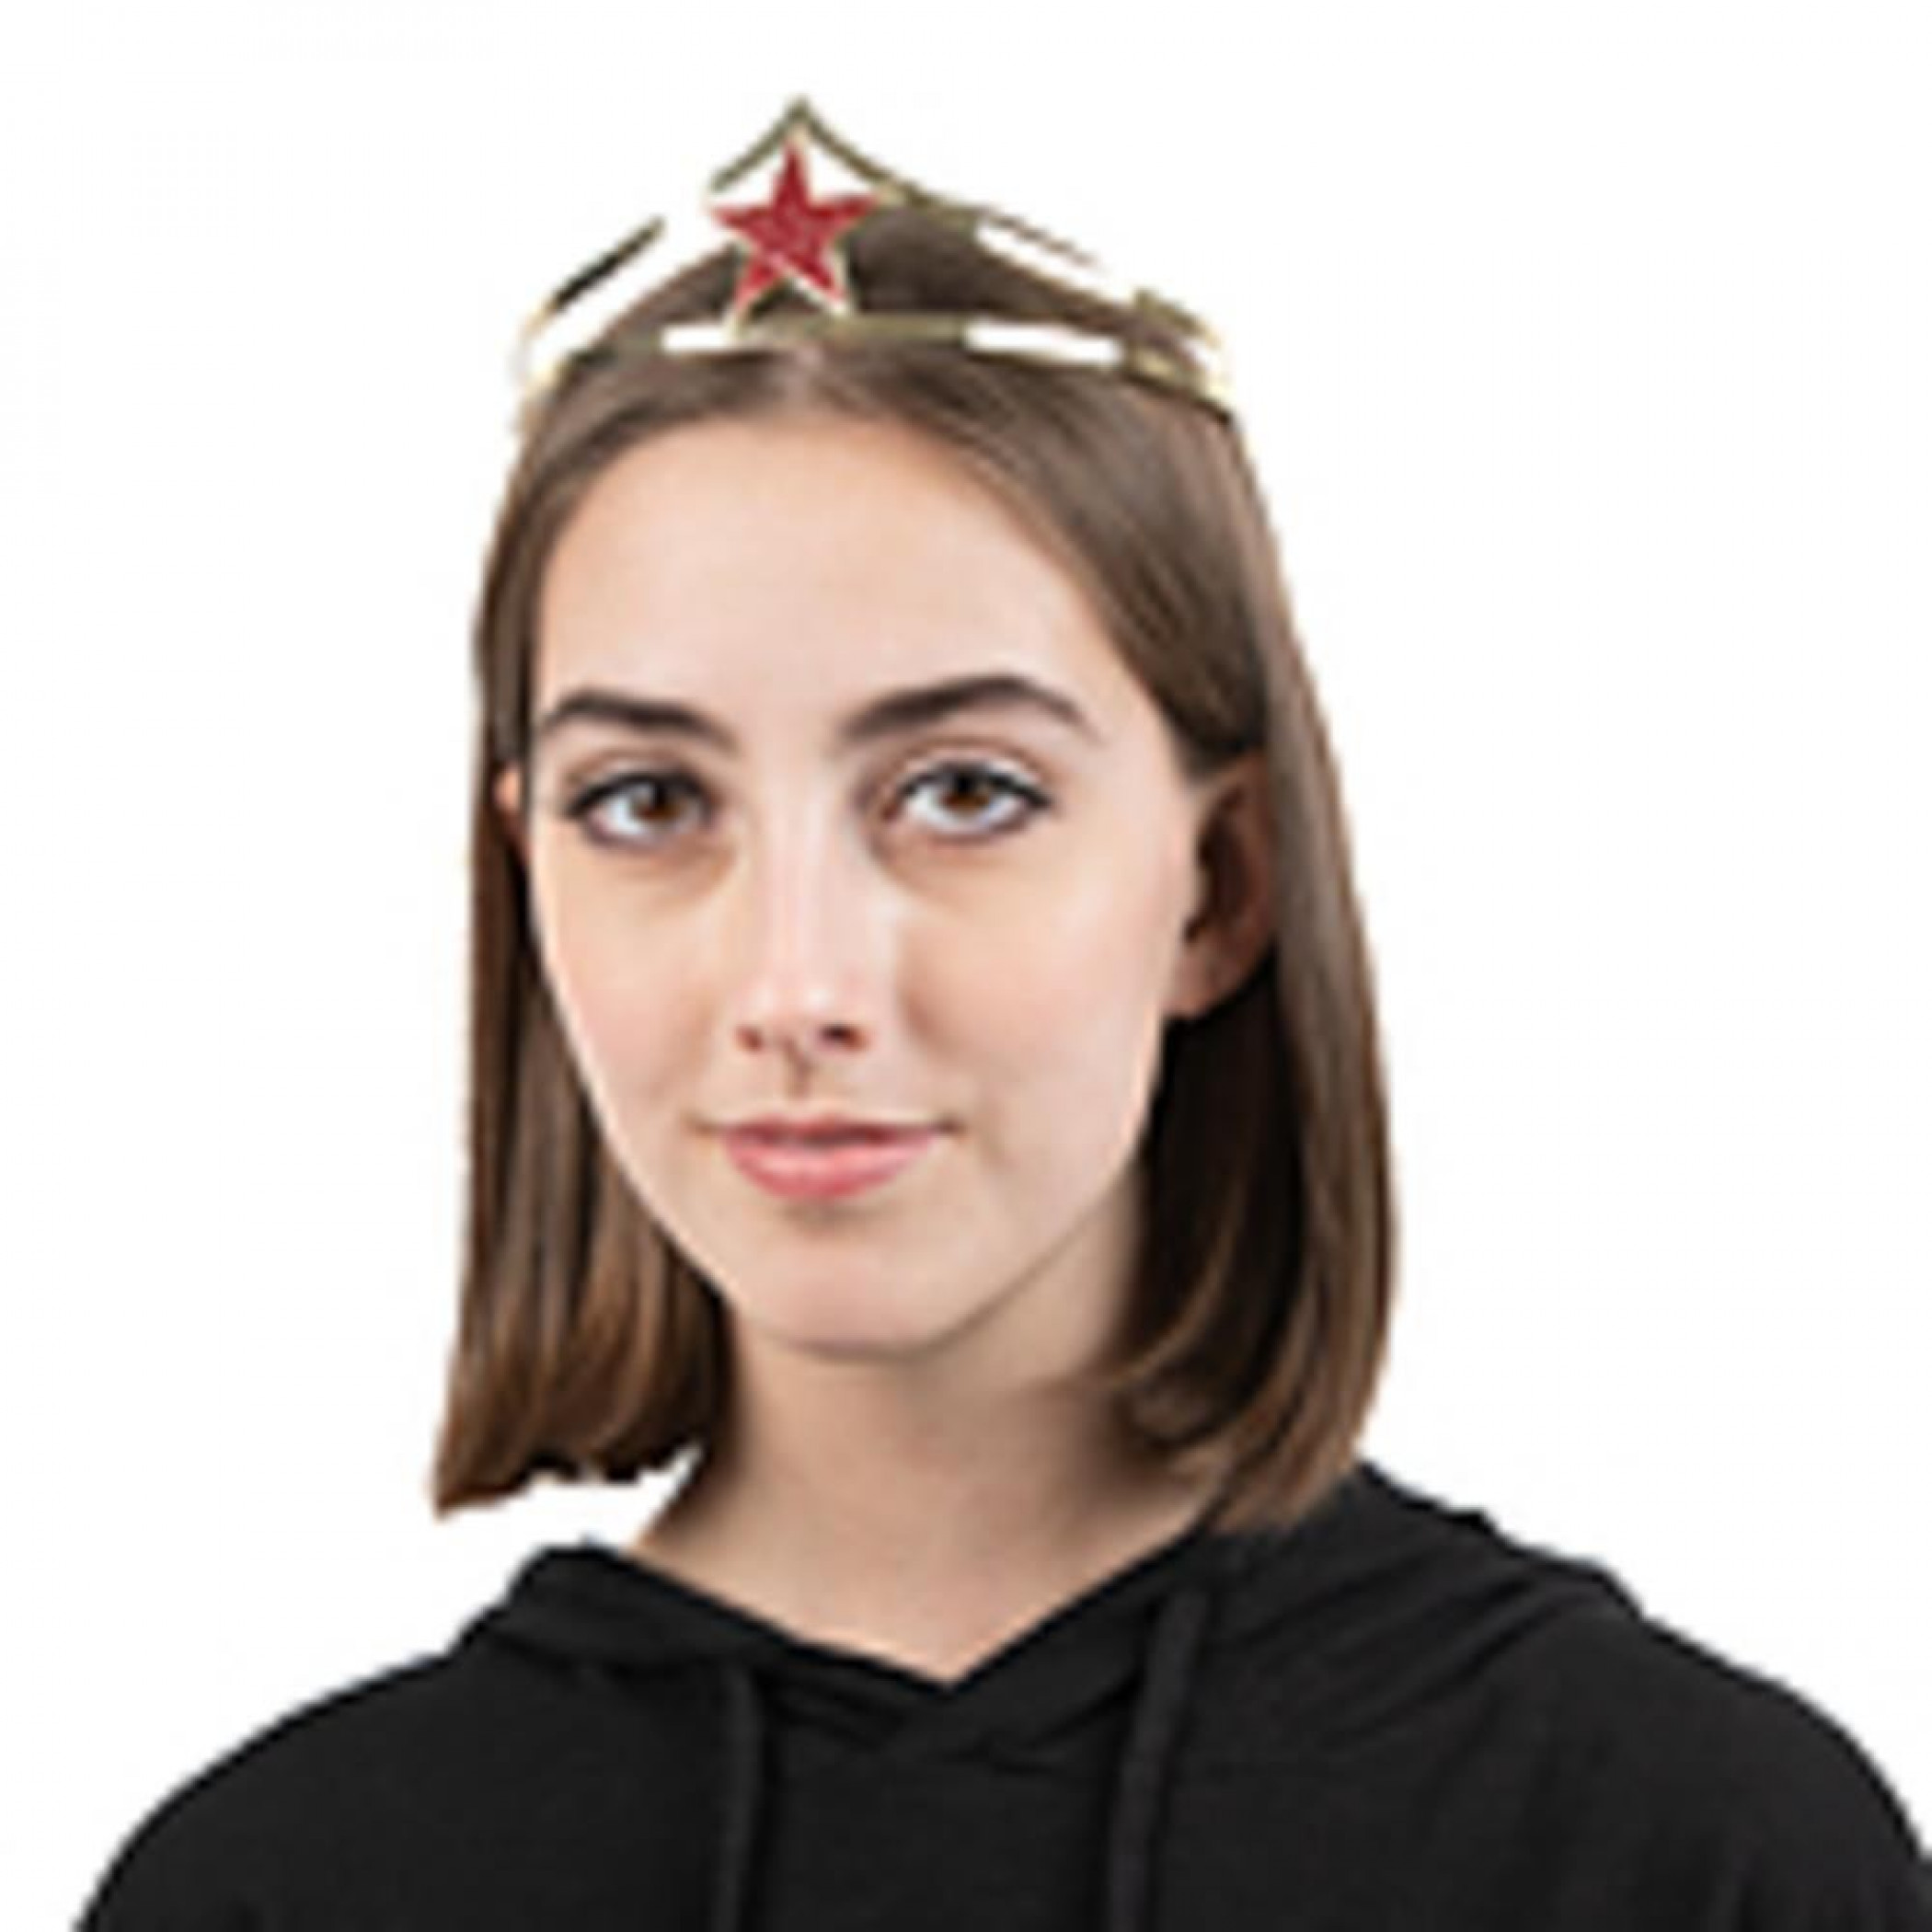 Wonder Woman Cosplay Tiara